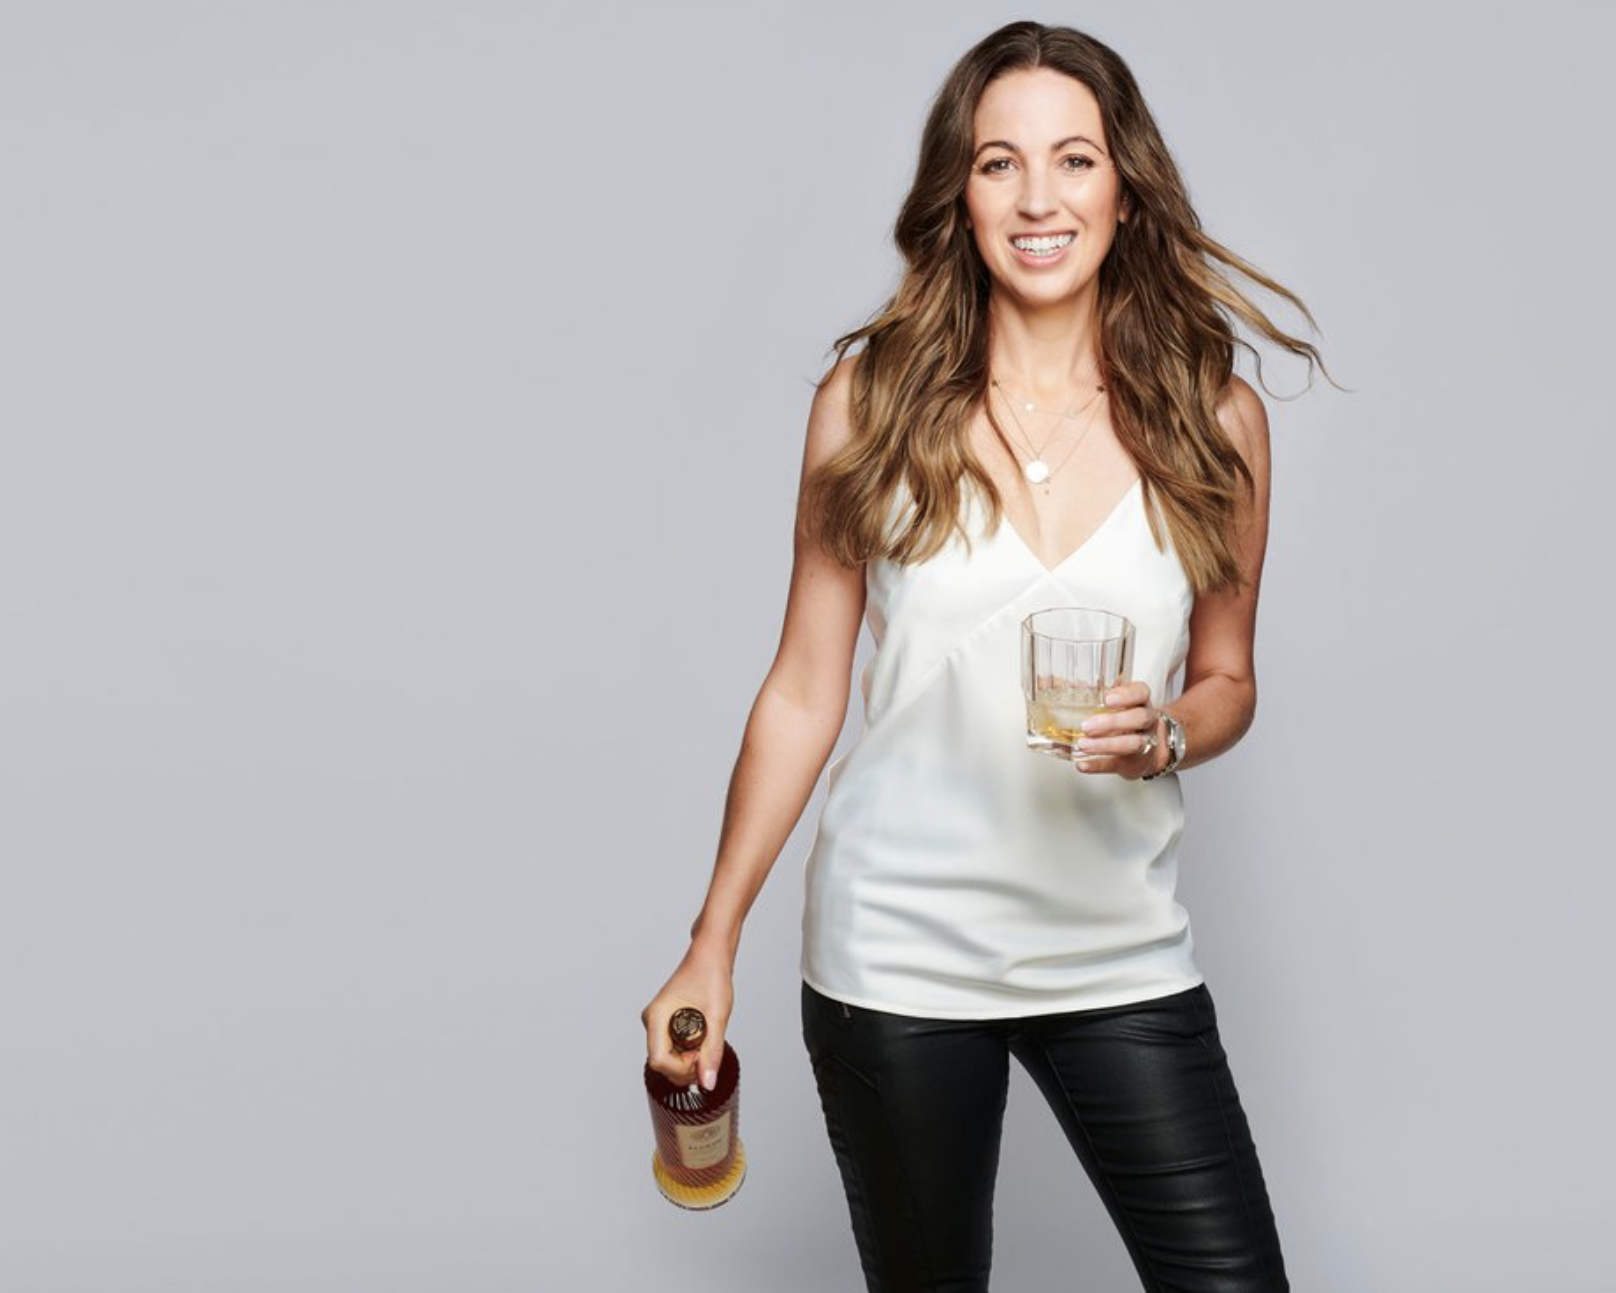 Sansdrinks, the alcohol-free website of Australian writer Irene Falcone, interviewed Amanda about the launch of Noughty alcohol-free sparkling Chardonnay in Australia and how she thinks drinking habits are changing for the better across the globe.